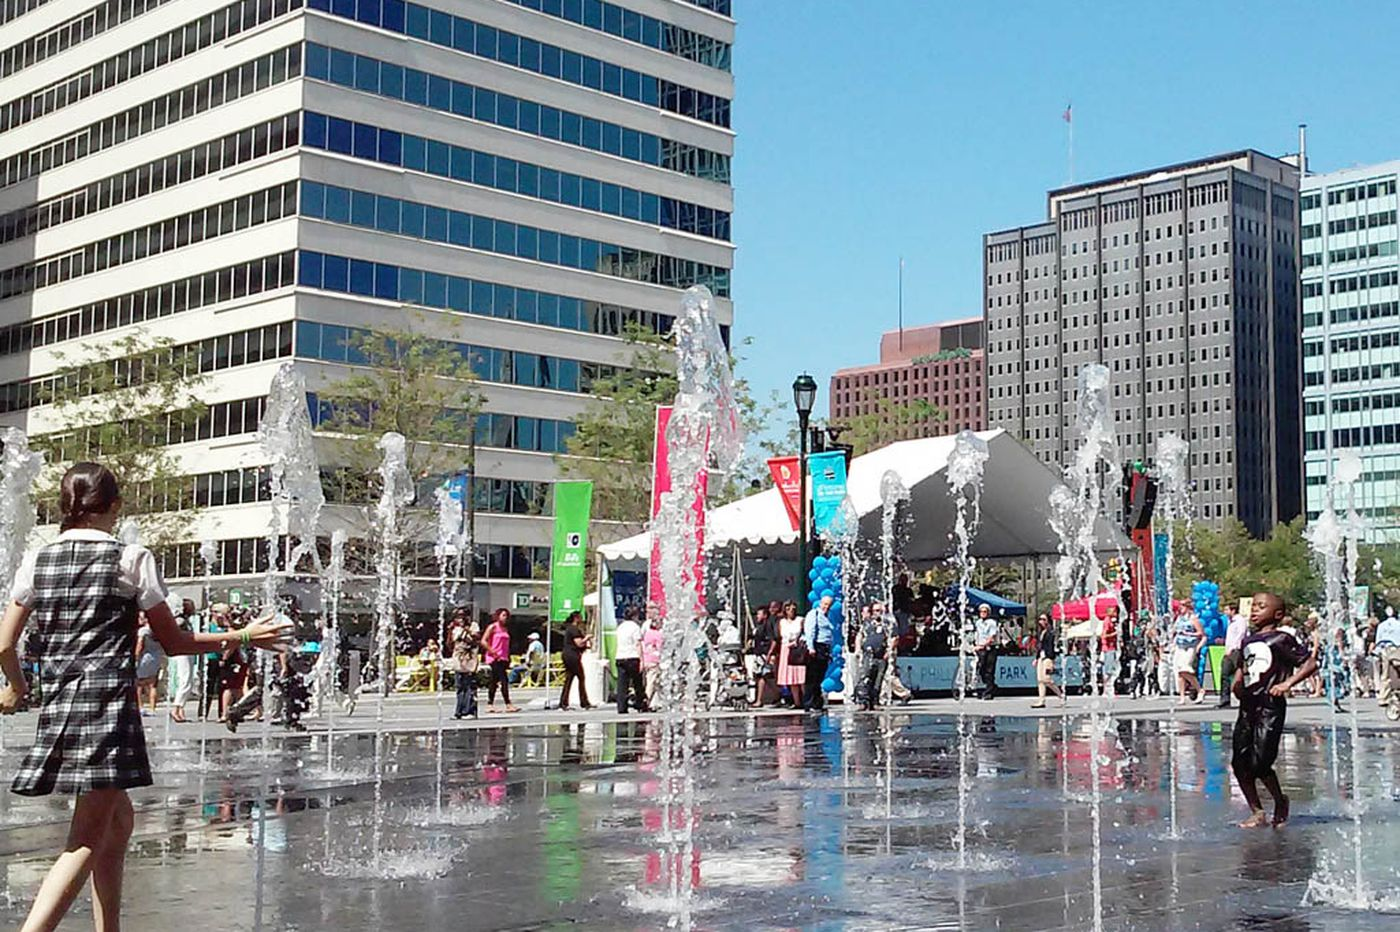 Dilworth Park opens to the public on west side of City Hall